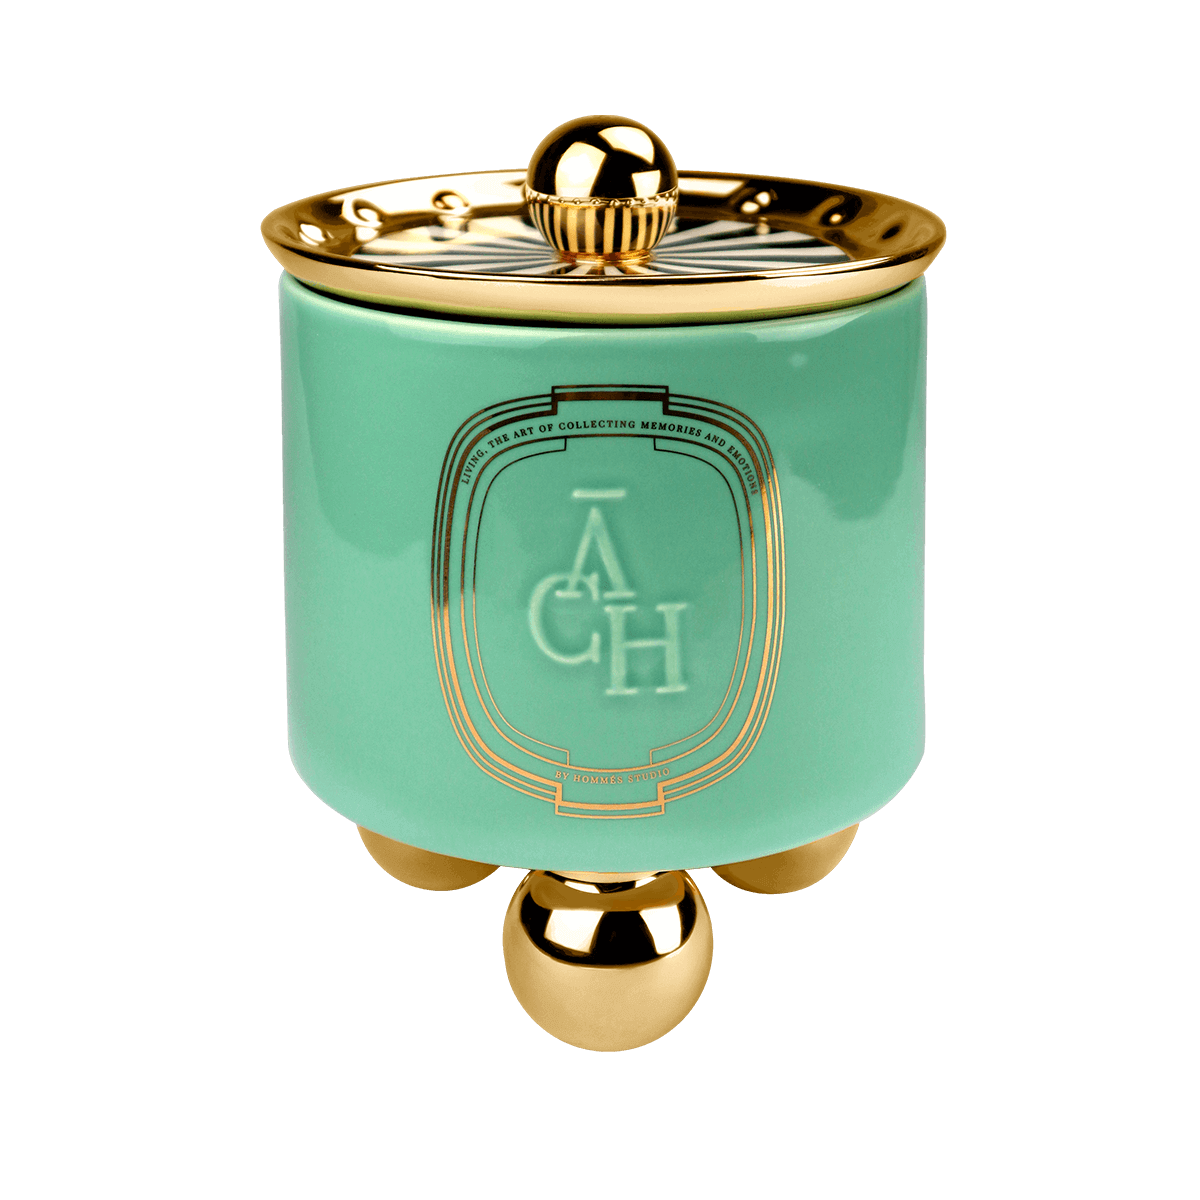 Achi Candle Green - Home Frangances by ACH Collection